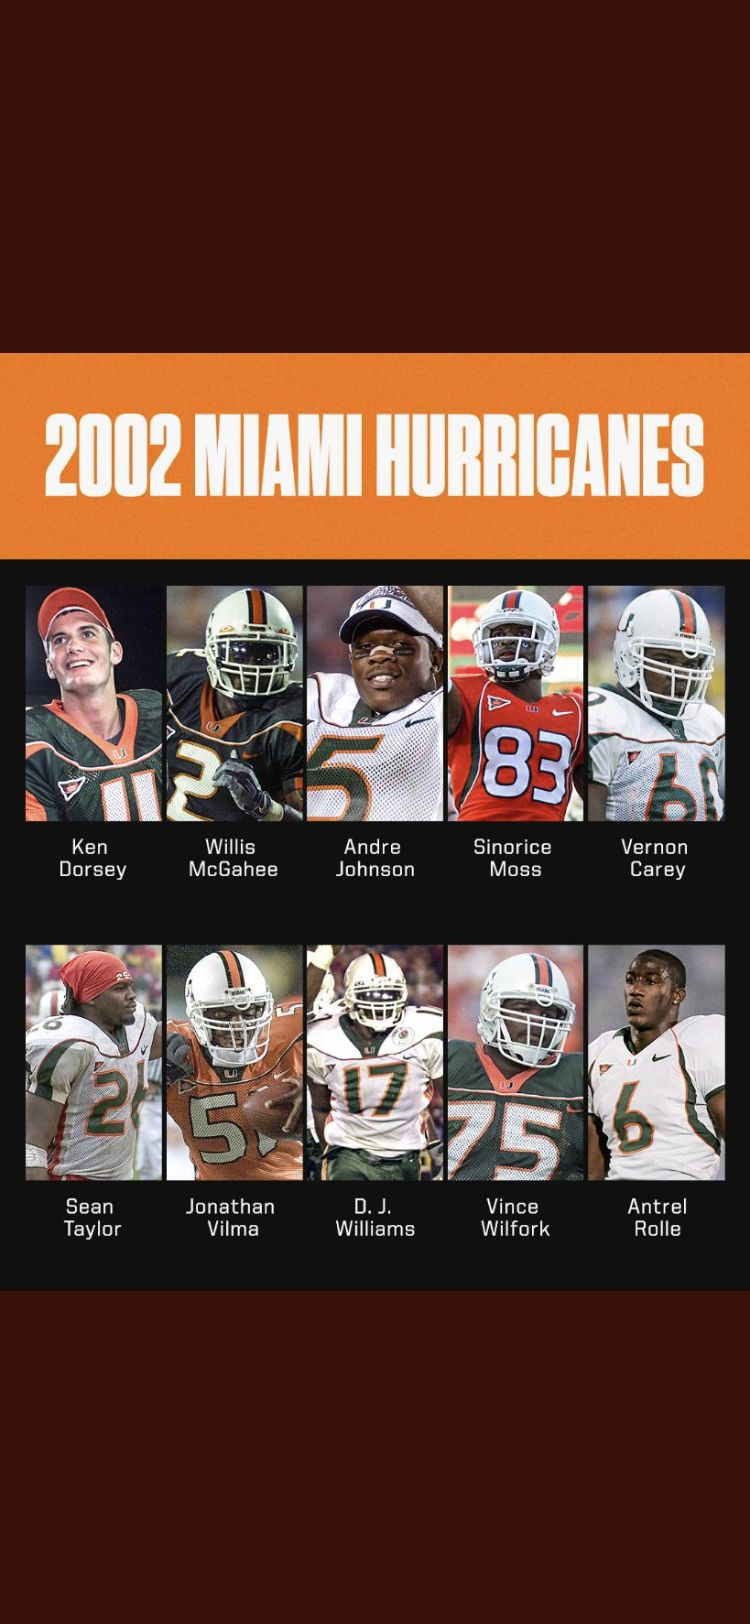 Pin By Tony Finck On Miami Hurricanes Football In 2020 Miami Hurricanes Football Miami Hurricanes Hurricanes Football